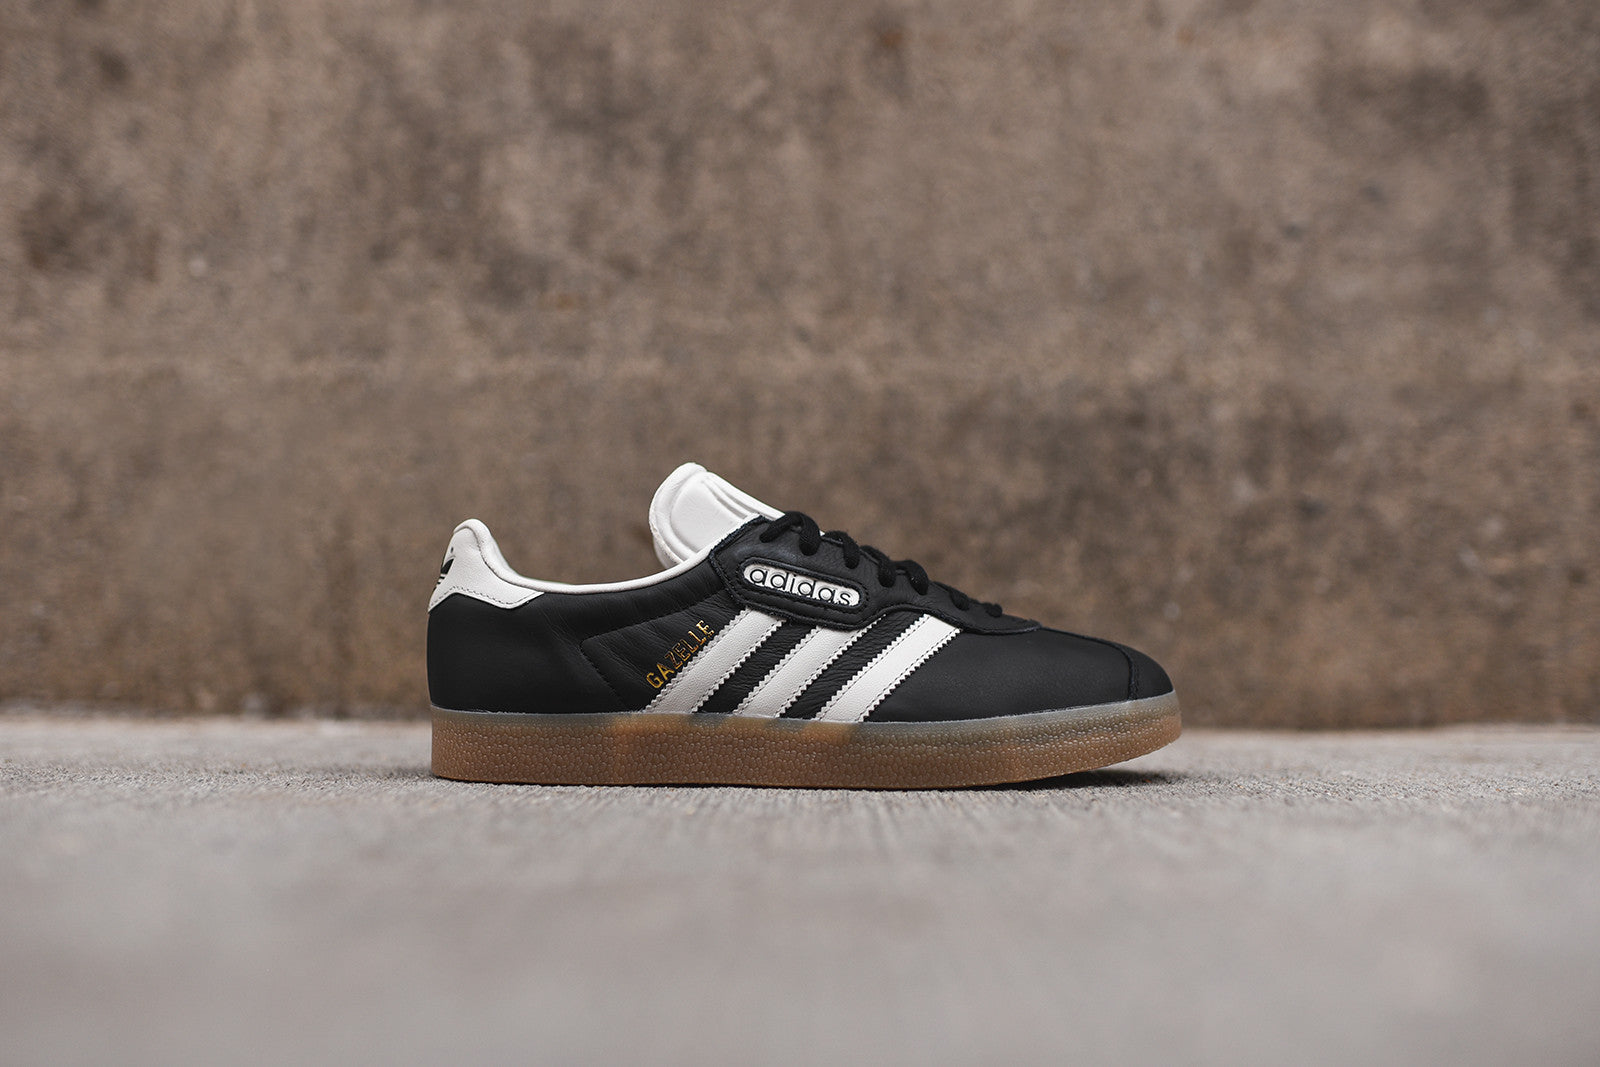 adidas gazelle black white gum